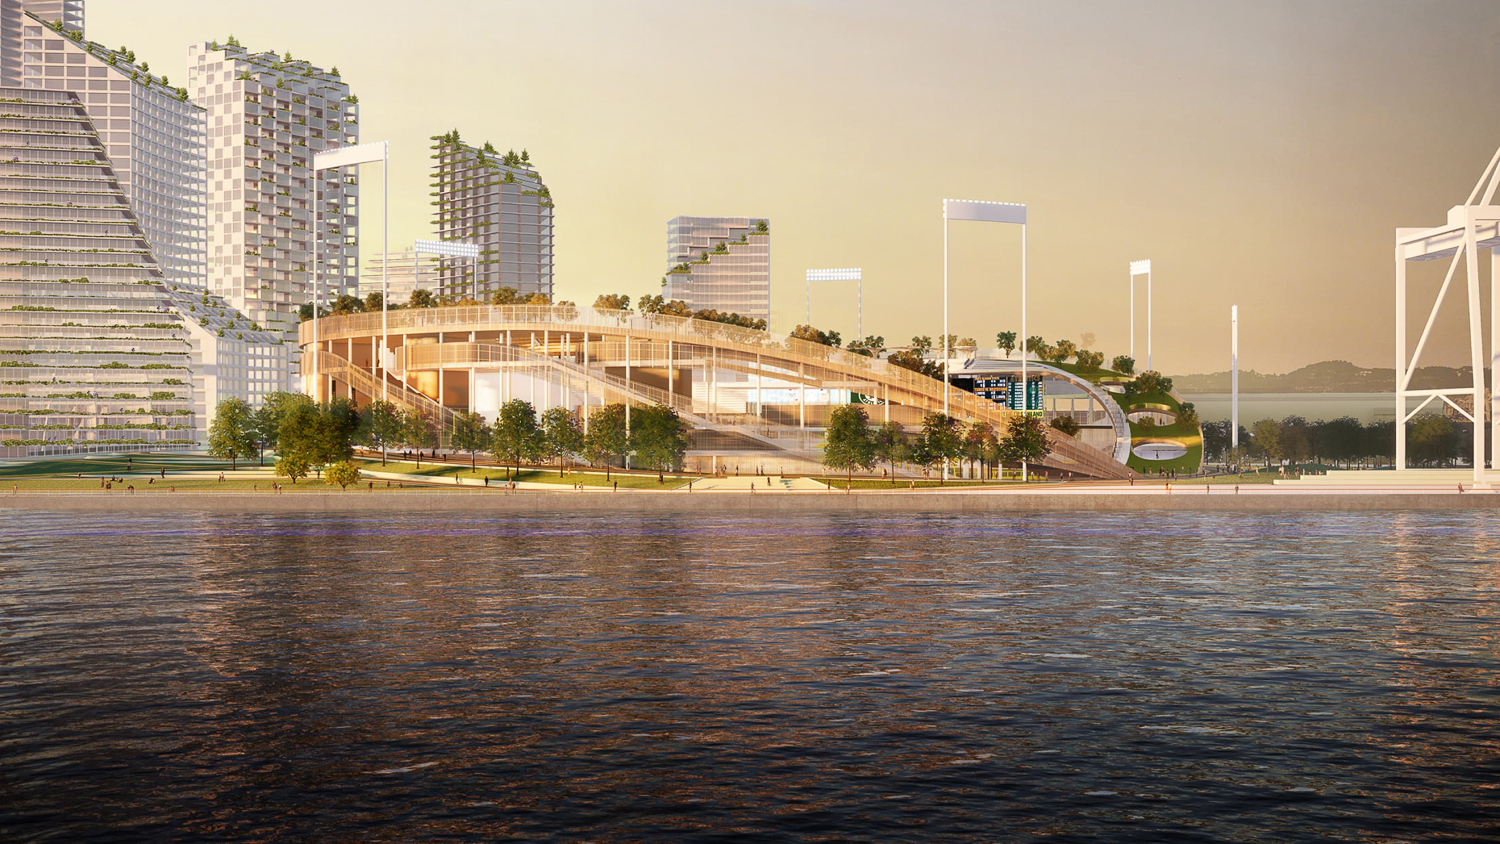 The Oakland Ball Park viewed from Alameda, rendering by BKF Engineers